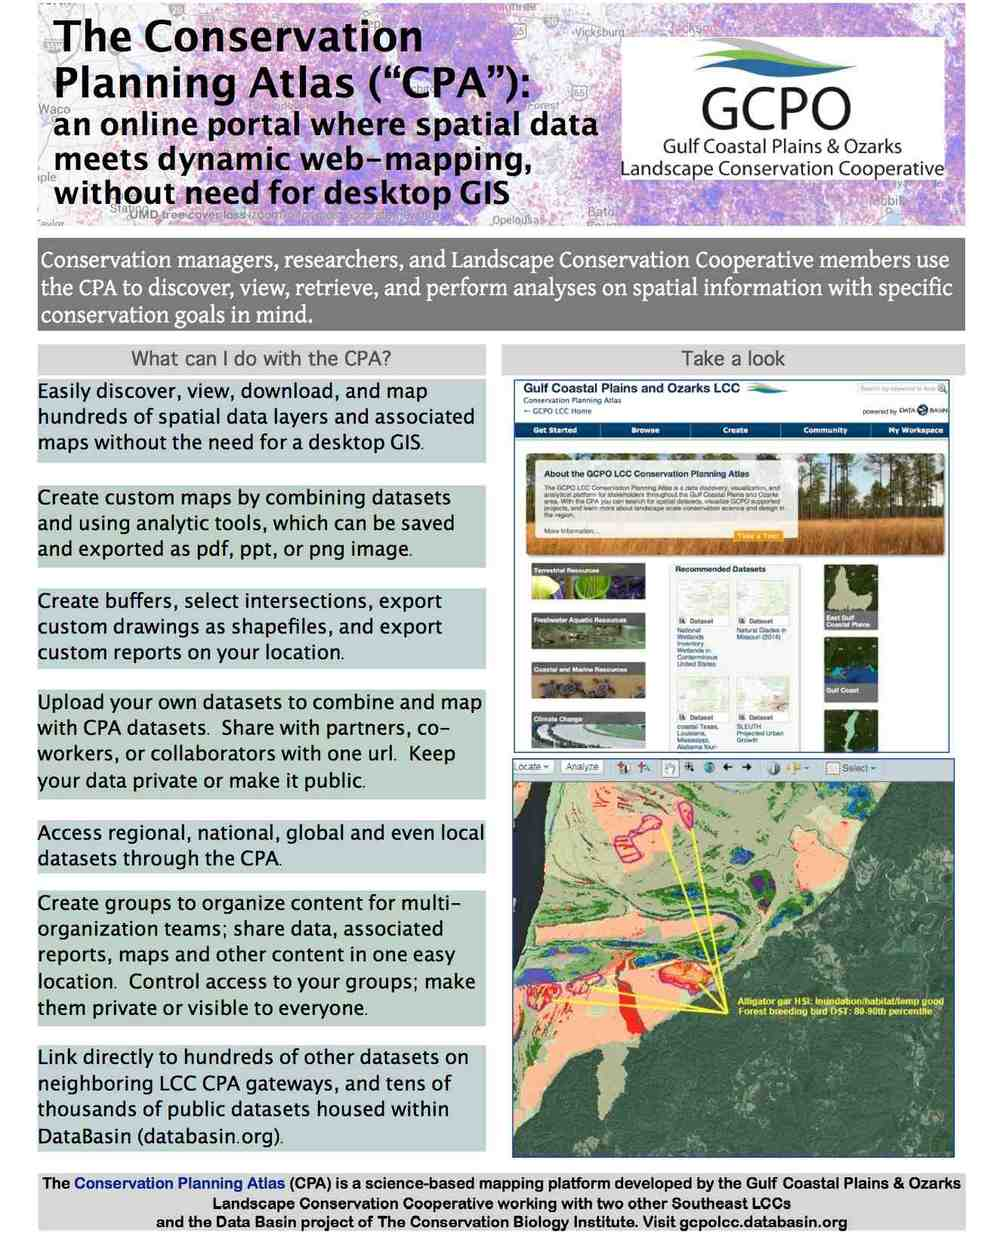 Conservation Planning Atlas factsheet